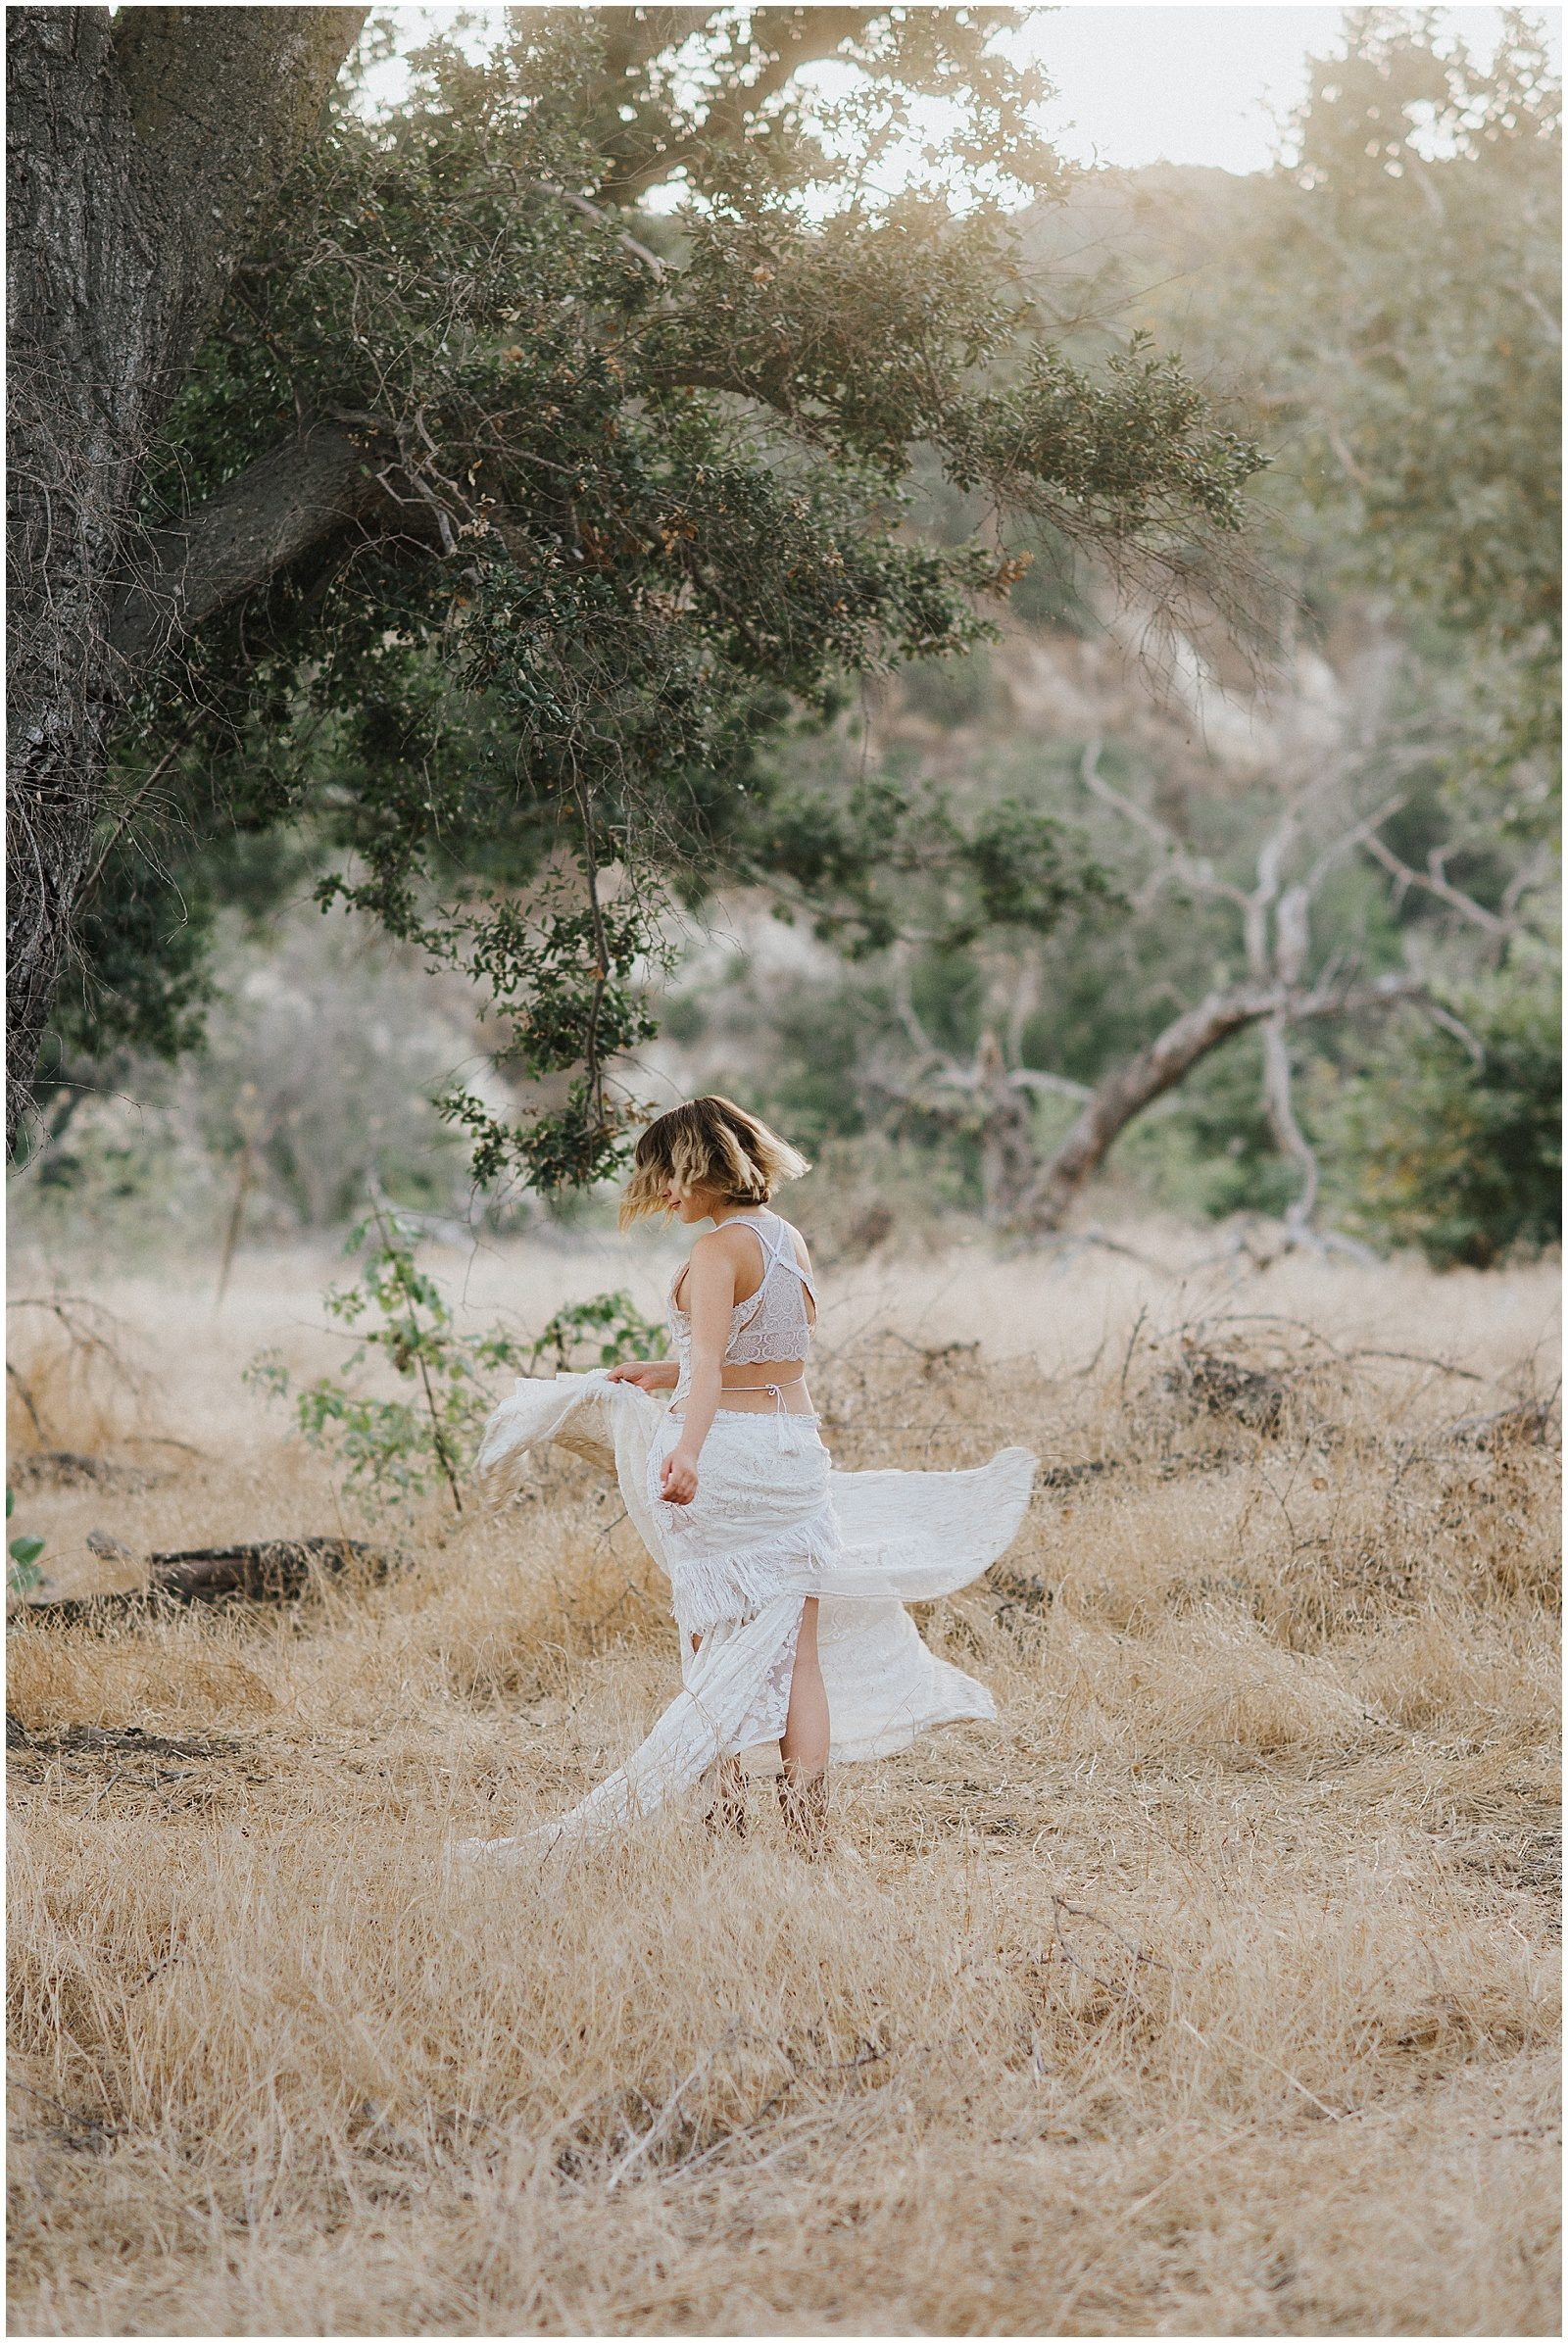 Orange County Family Photographer Travelling Reclamation Dress 0268